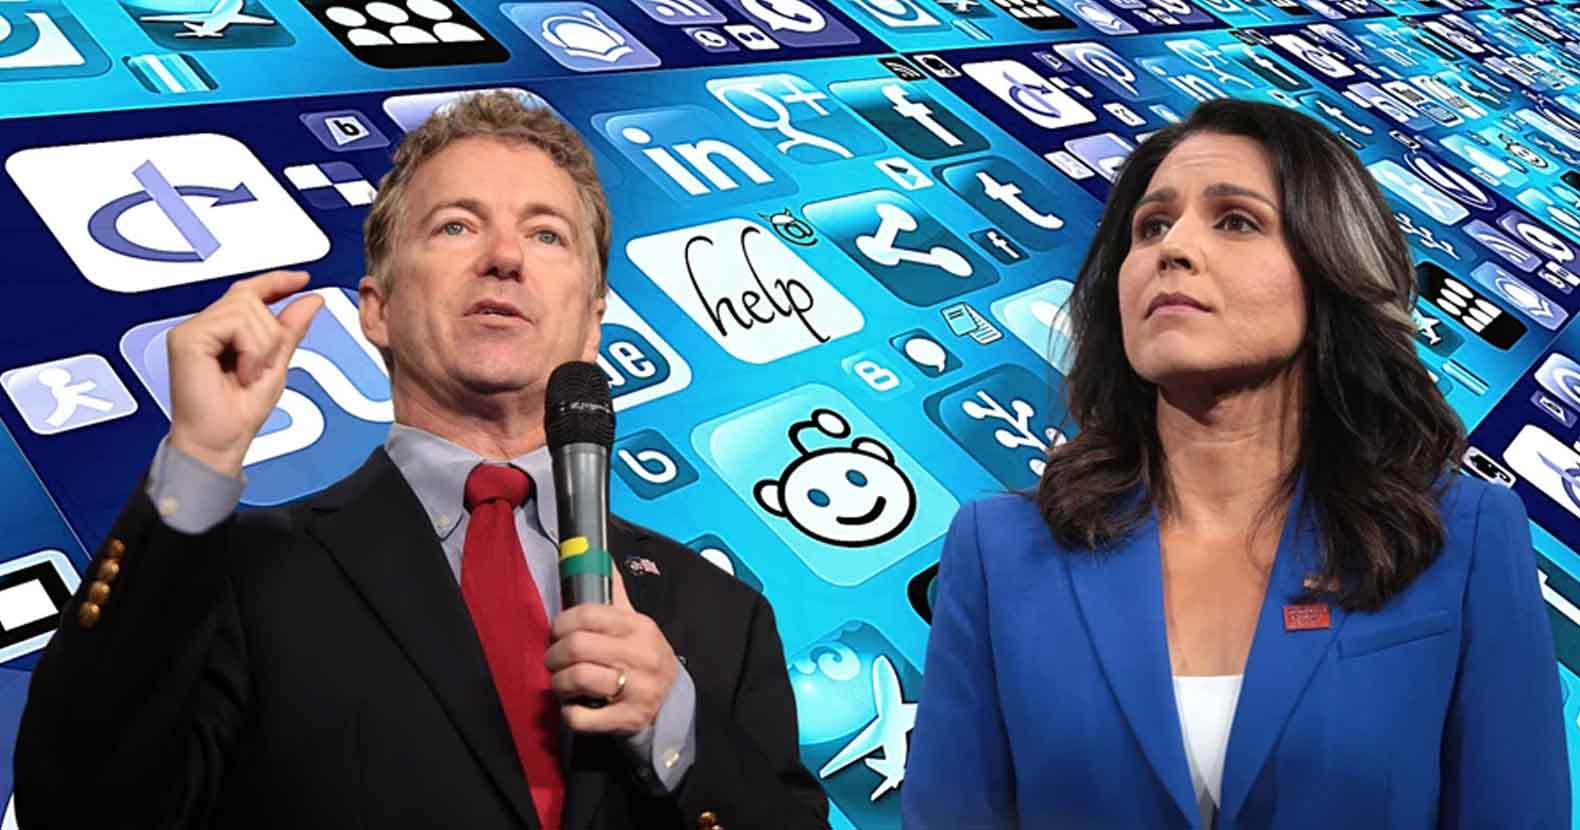 Rand Paul and Tulsi Gabbard Team Up to Unplug the President's 'Internet Kill Switch'